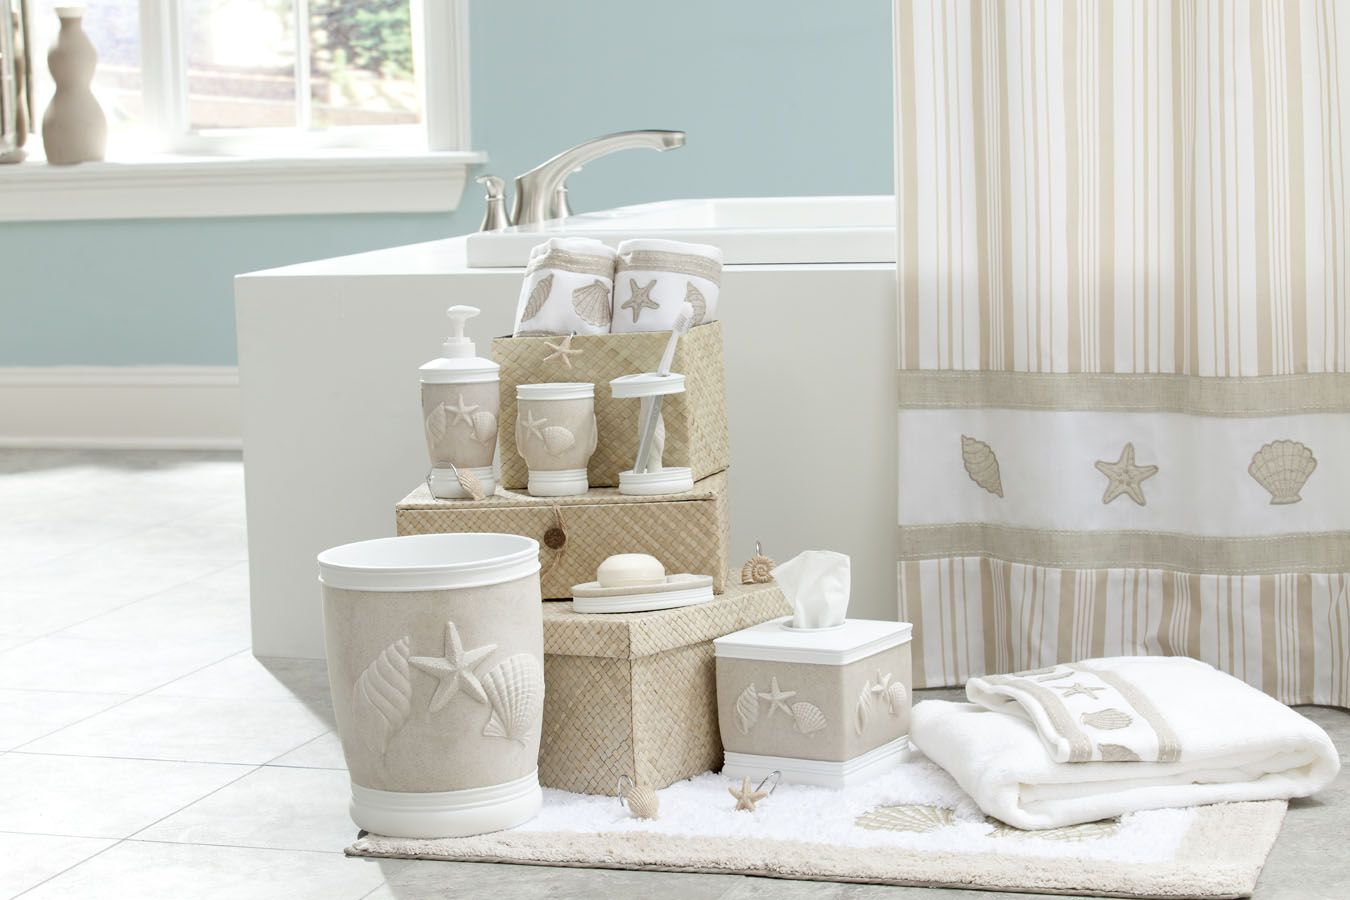 Costal Bathroom Decor: A Beachy Bath Ensemble Will Give Your Bathroom A Costal